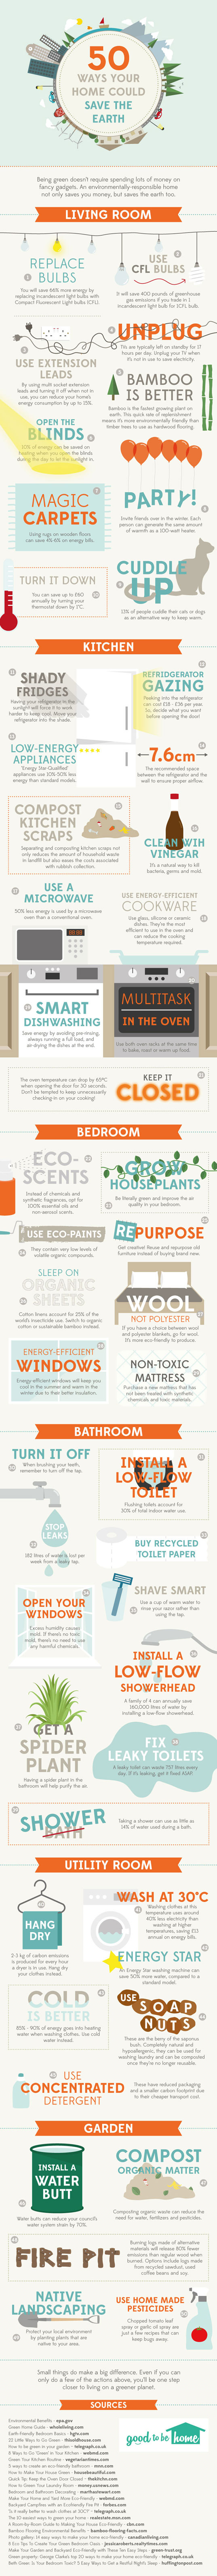 50 ways your home could save the earth